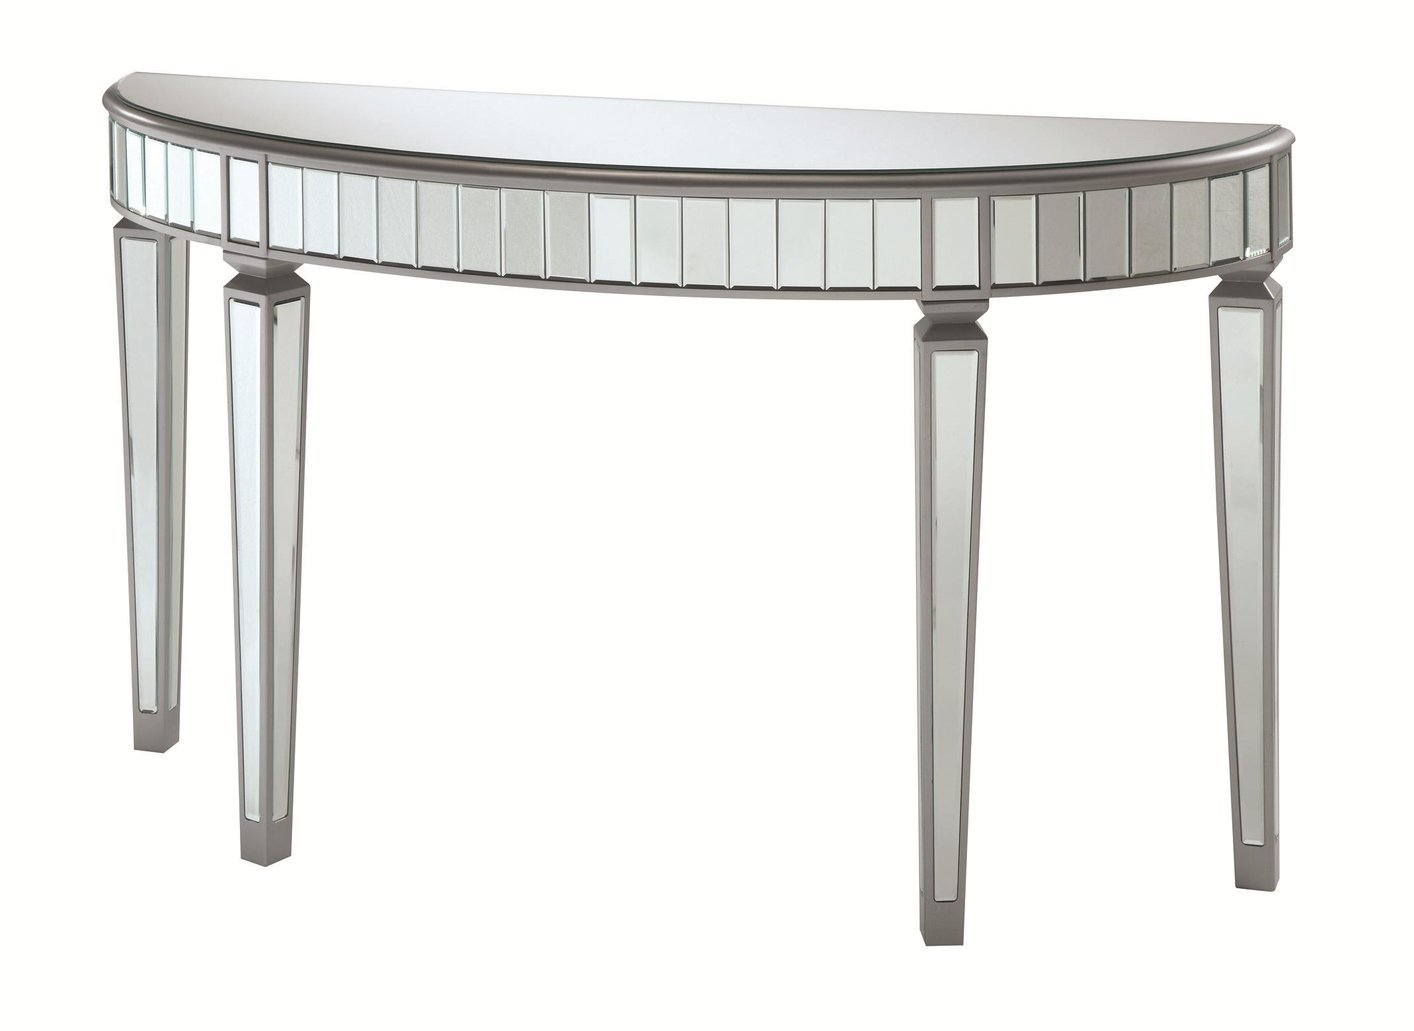 silver glass console table  stealasofa furniture outlet los . silver glass console table silver glass console table